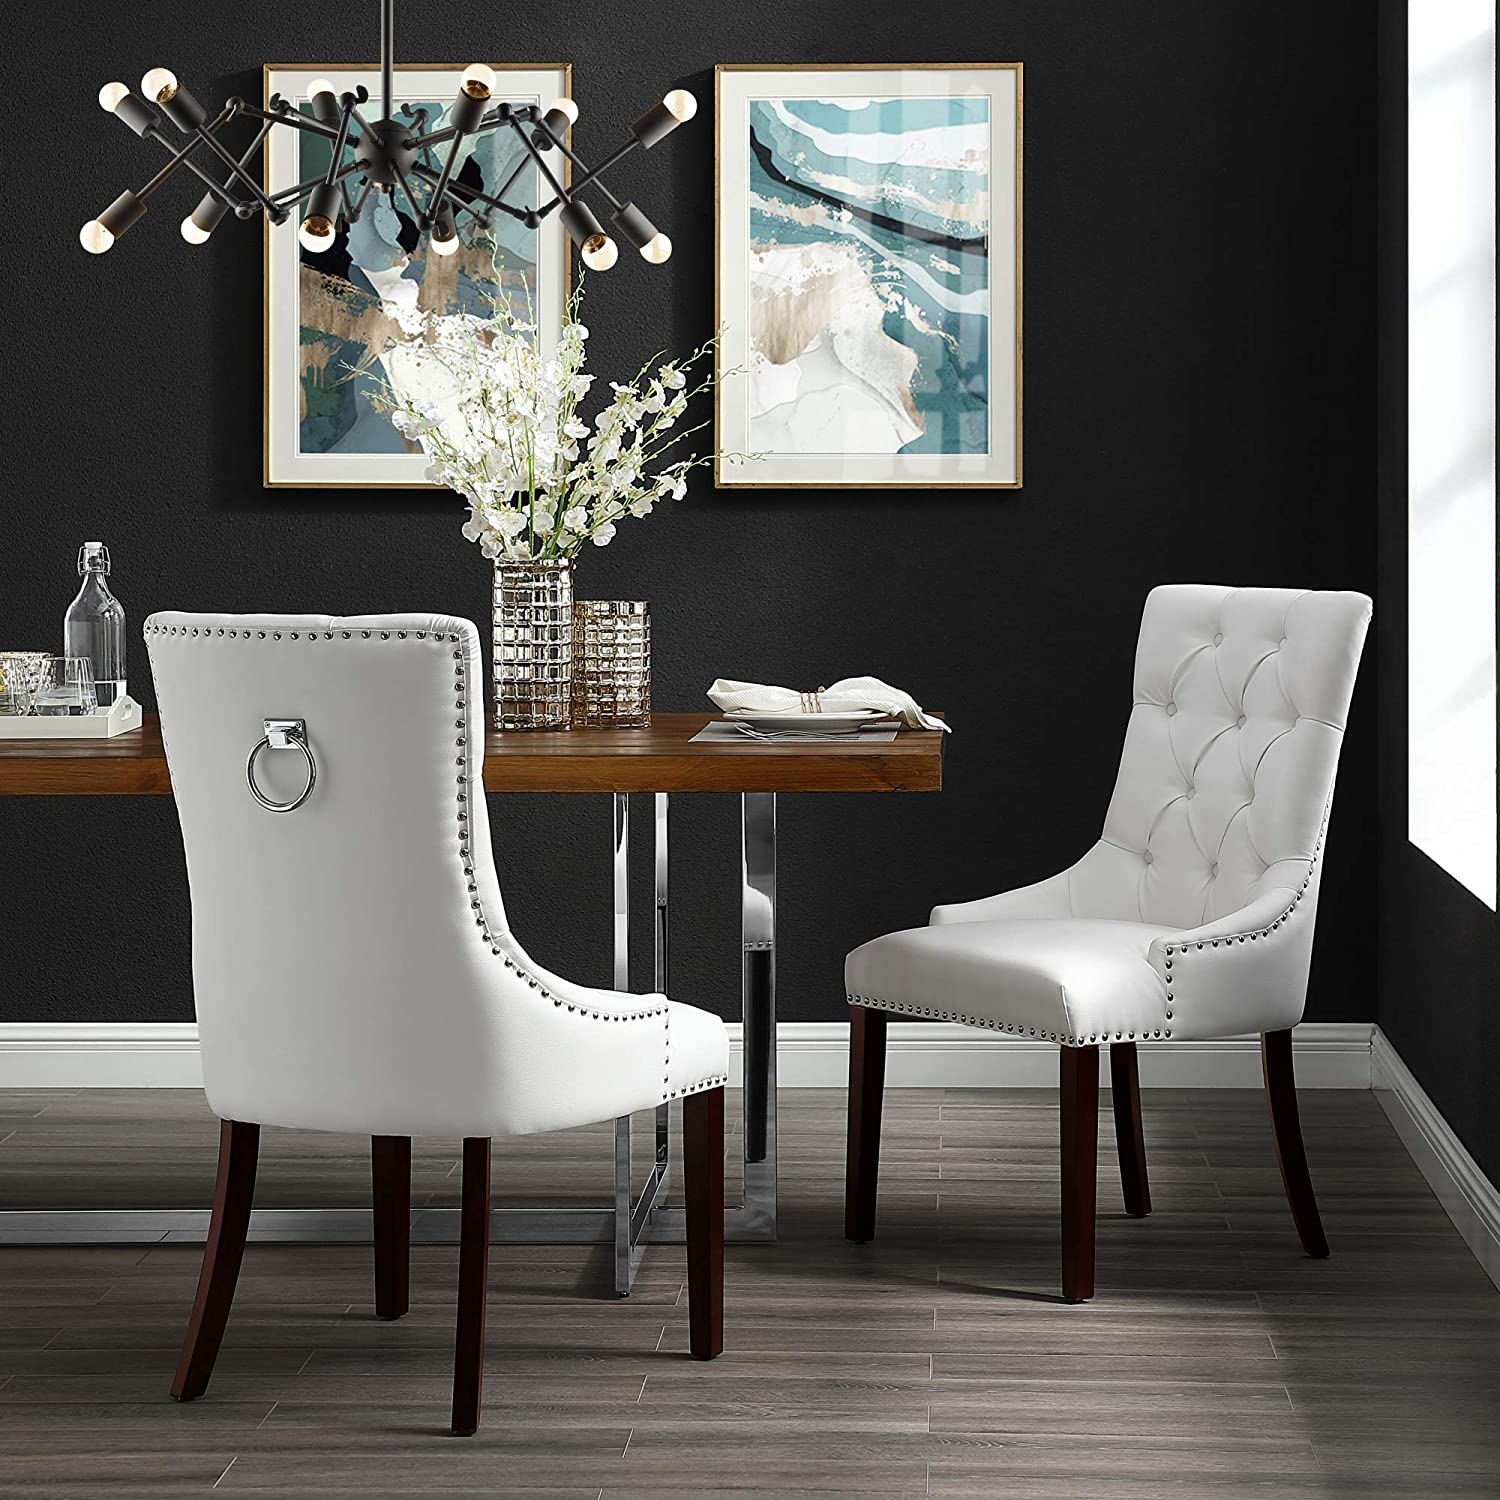 InspiredHome White Leather Dining Chair - Design: Alberto | Set of 2 | Tufted | Ring Handle | Chrome Nailhead Finish